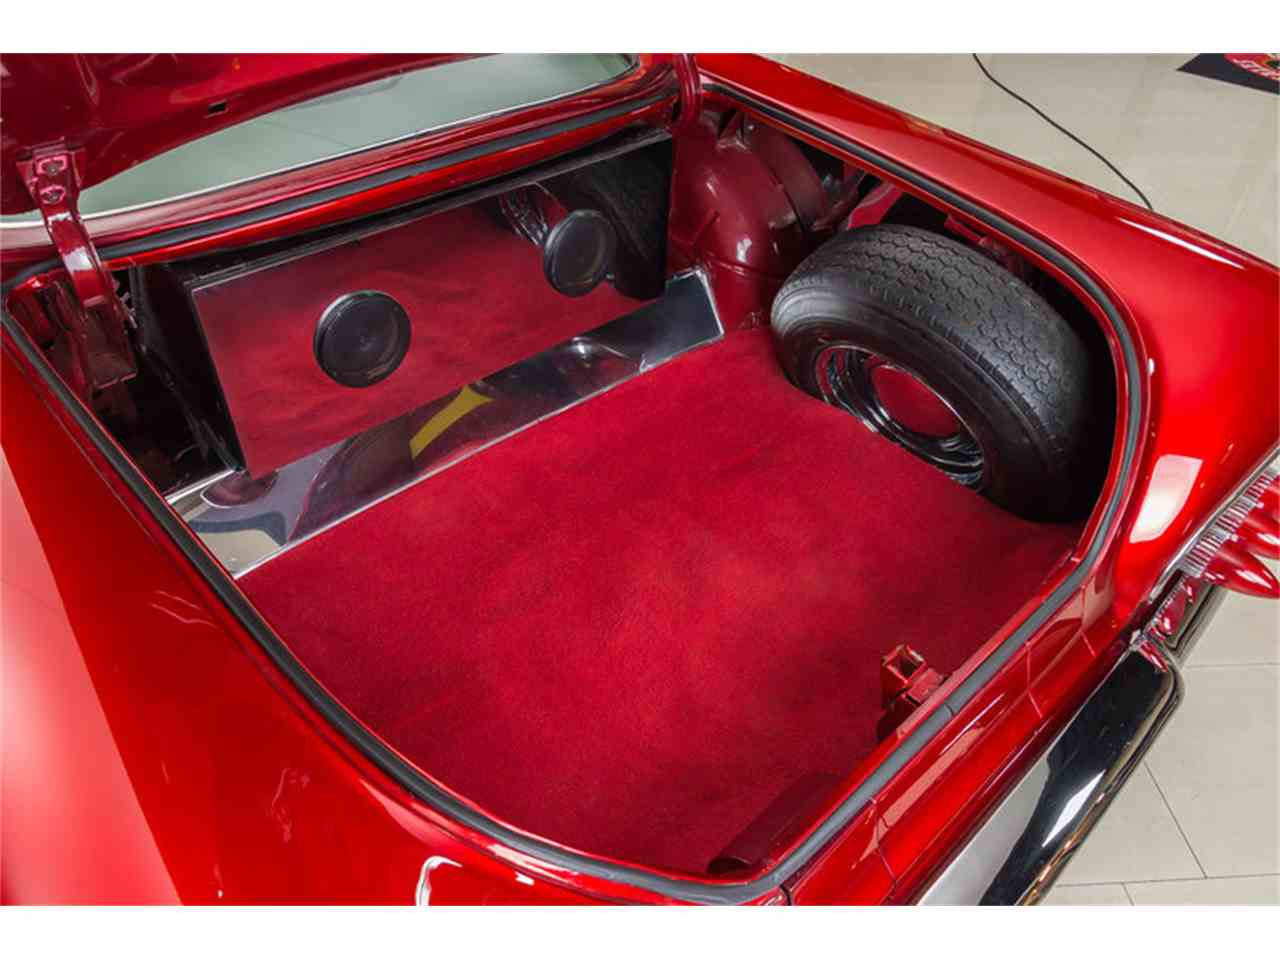 Large Picture of Classic '58 Chevrolet Impala - $64,900.00 - K273